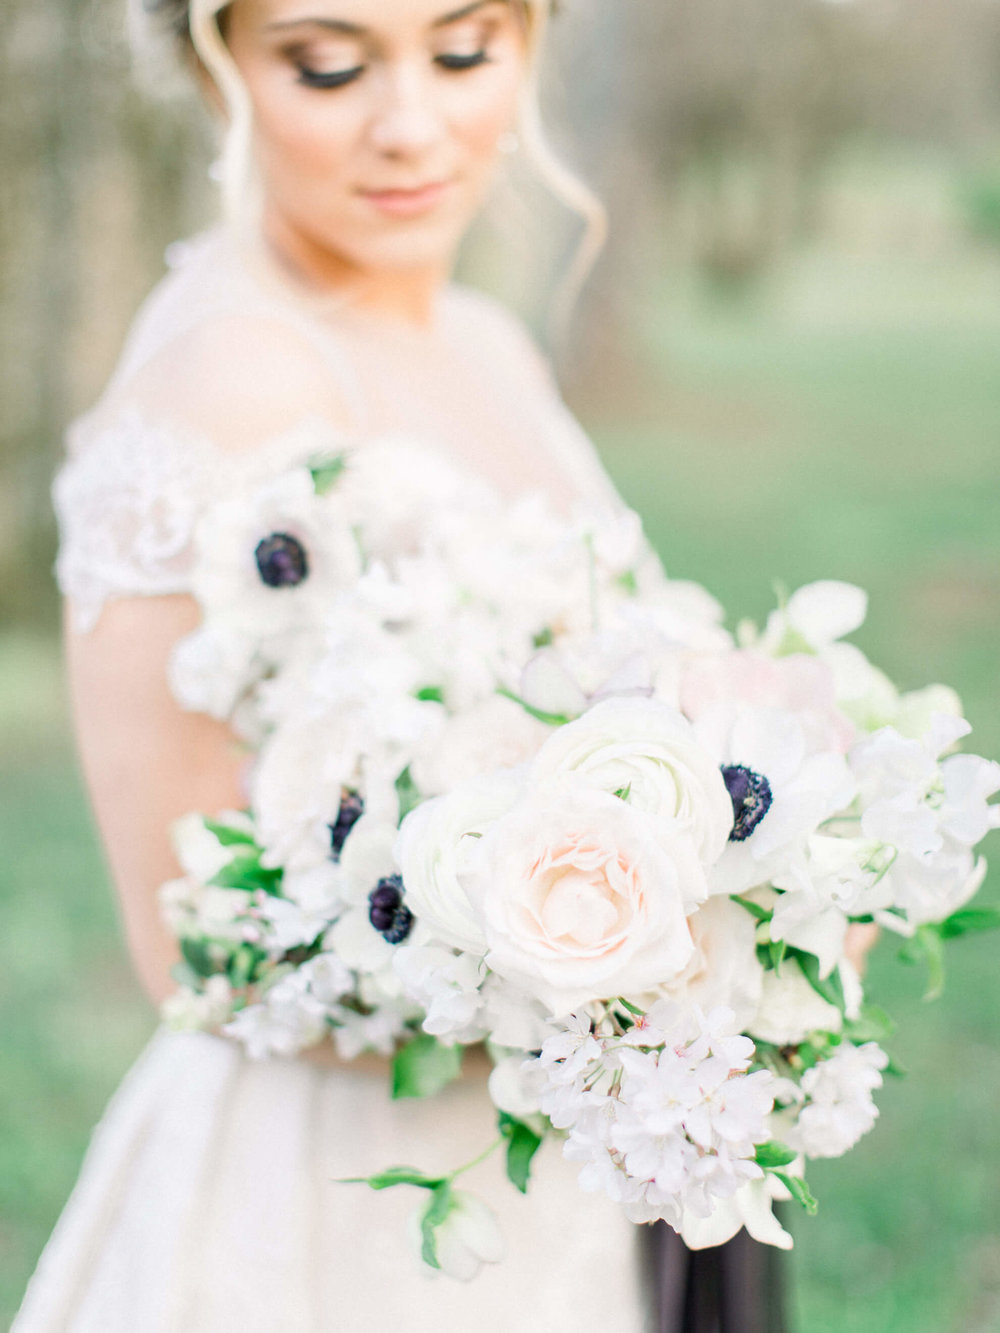 $3500 - the Flower Loverour most popular package——Perfect coverage for a wedding party of around 6-16, a sweet ceremony setup, and reception florals for around 100 guests.